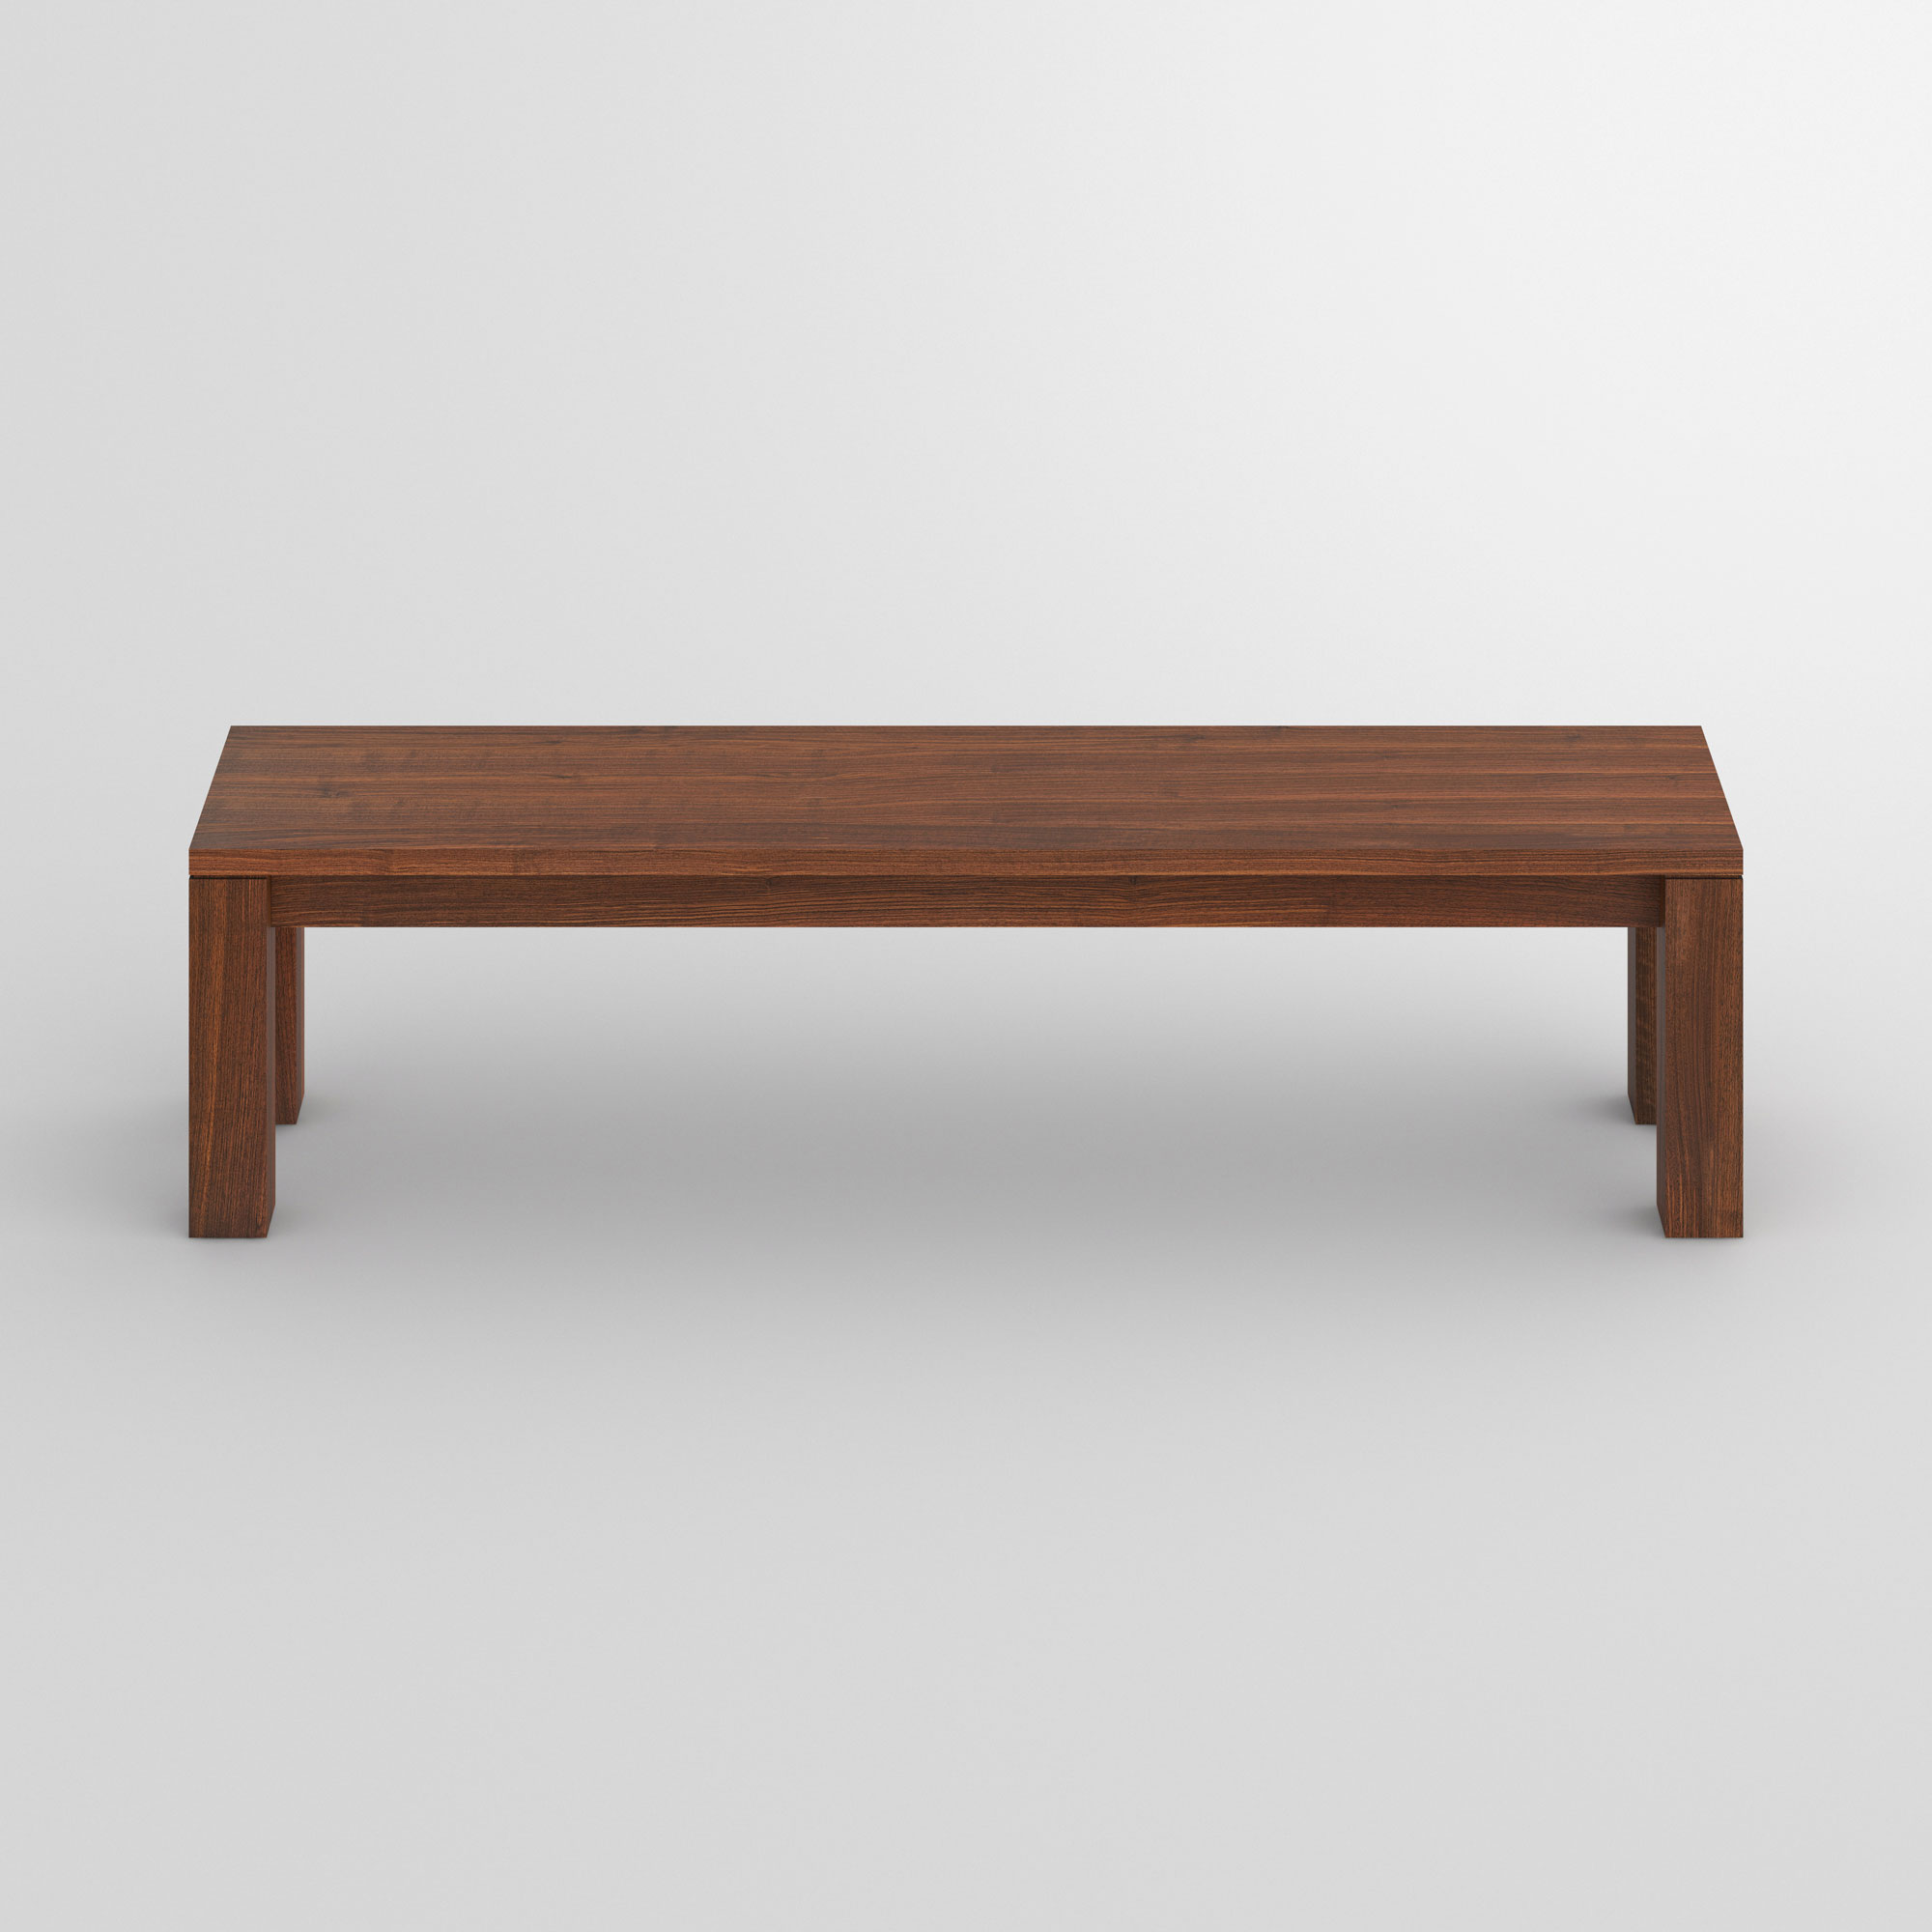 Wood Bench Rustic LIVING cam2 custom made in solid wood by vitamin design